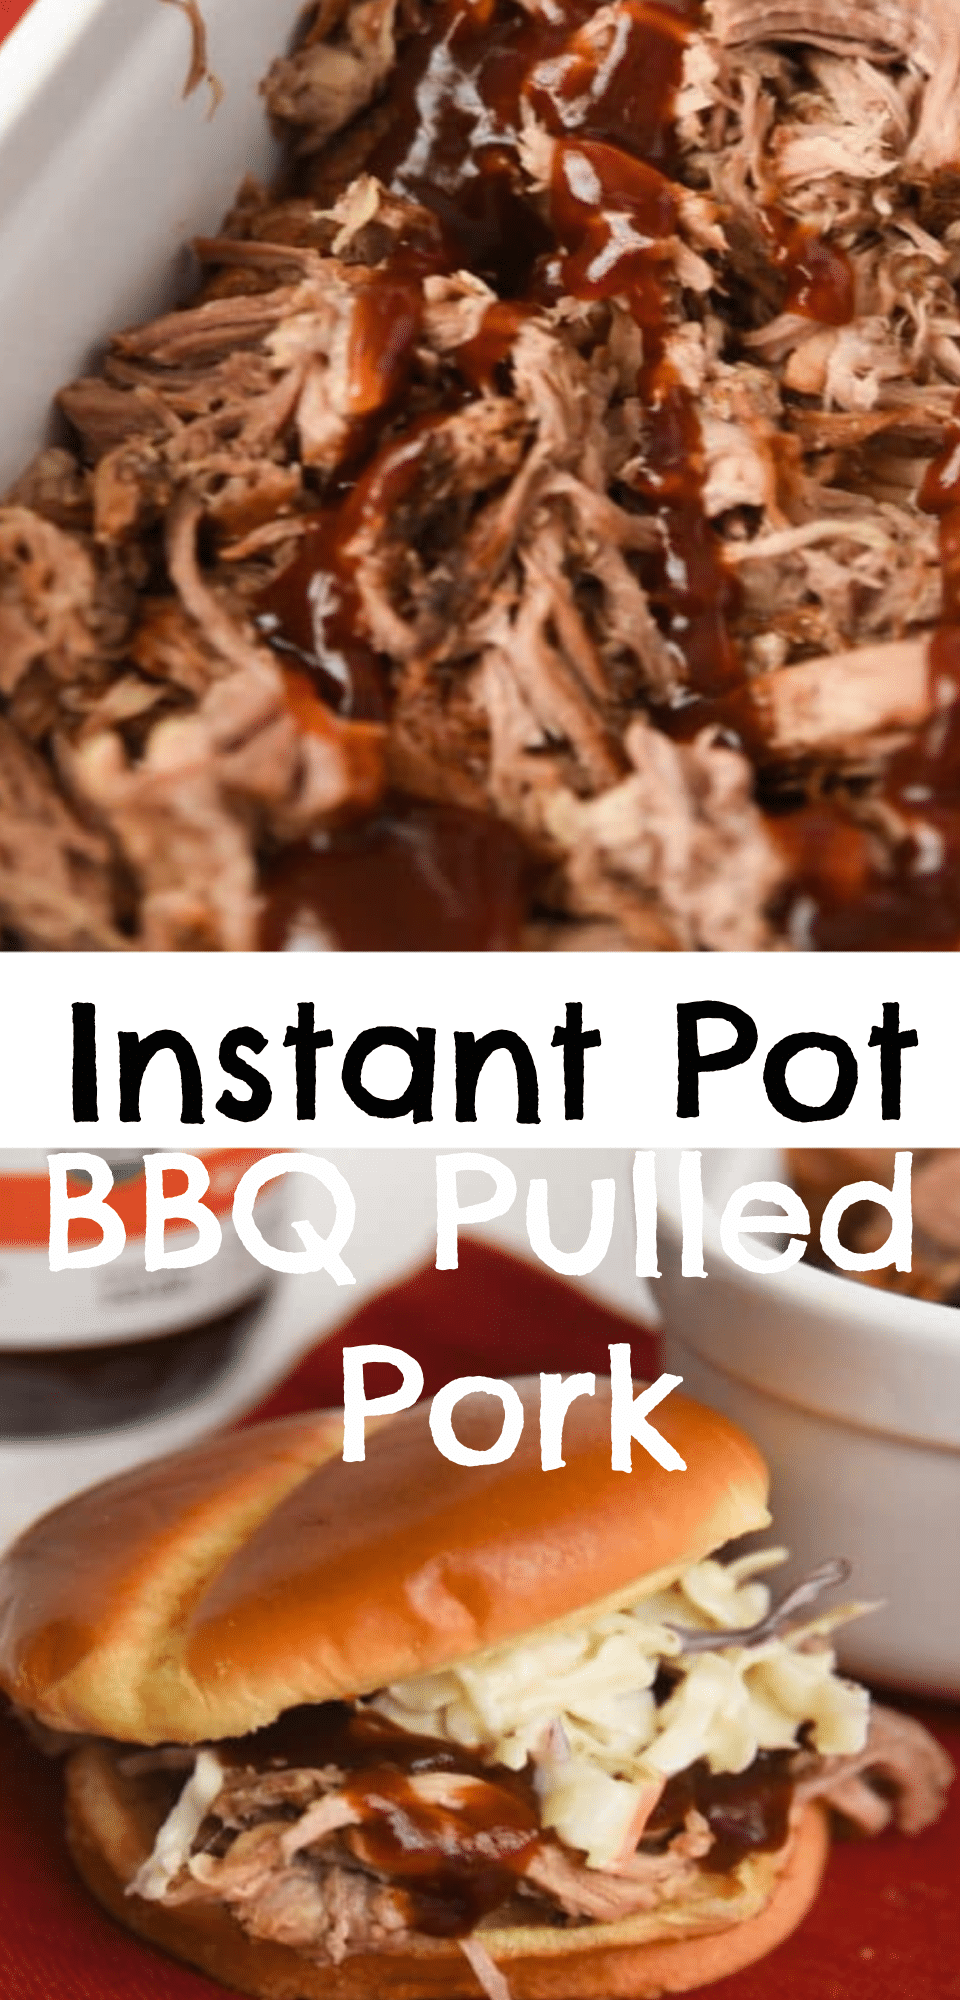 Making BBQ Pulled Pork has never been easier. Make Instant Pot Pulled Pork and be amazed at how tender and delicious it comes out. via @clarkscondensed